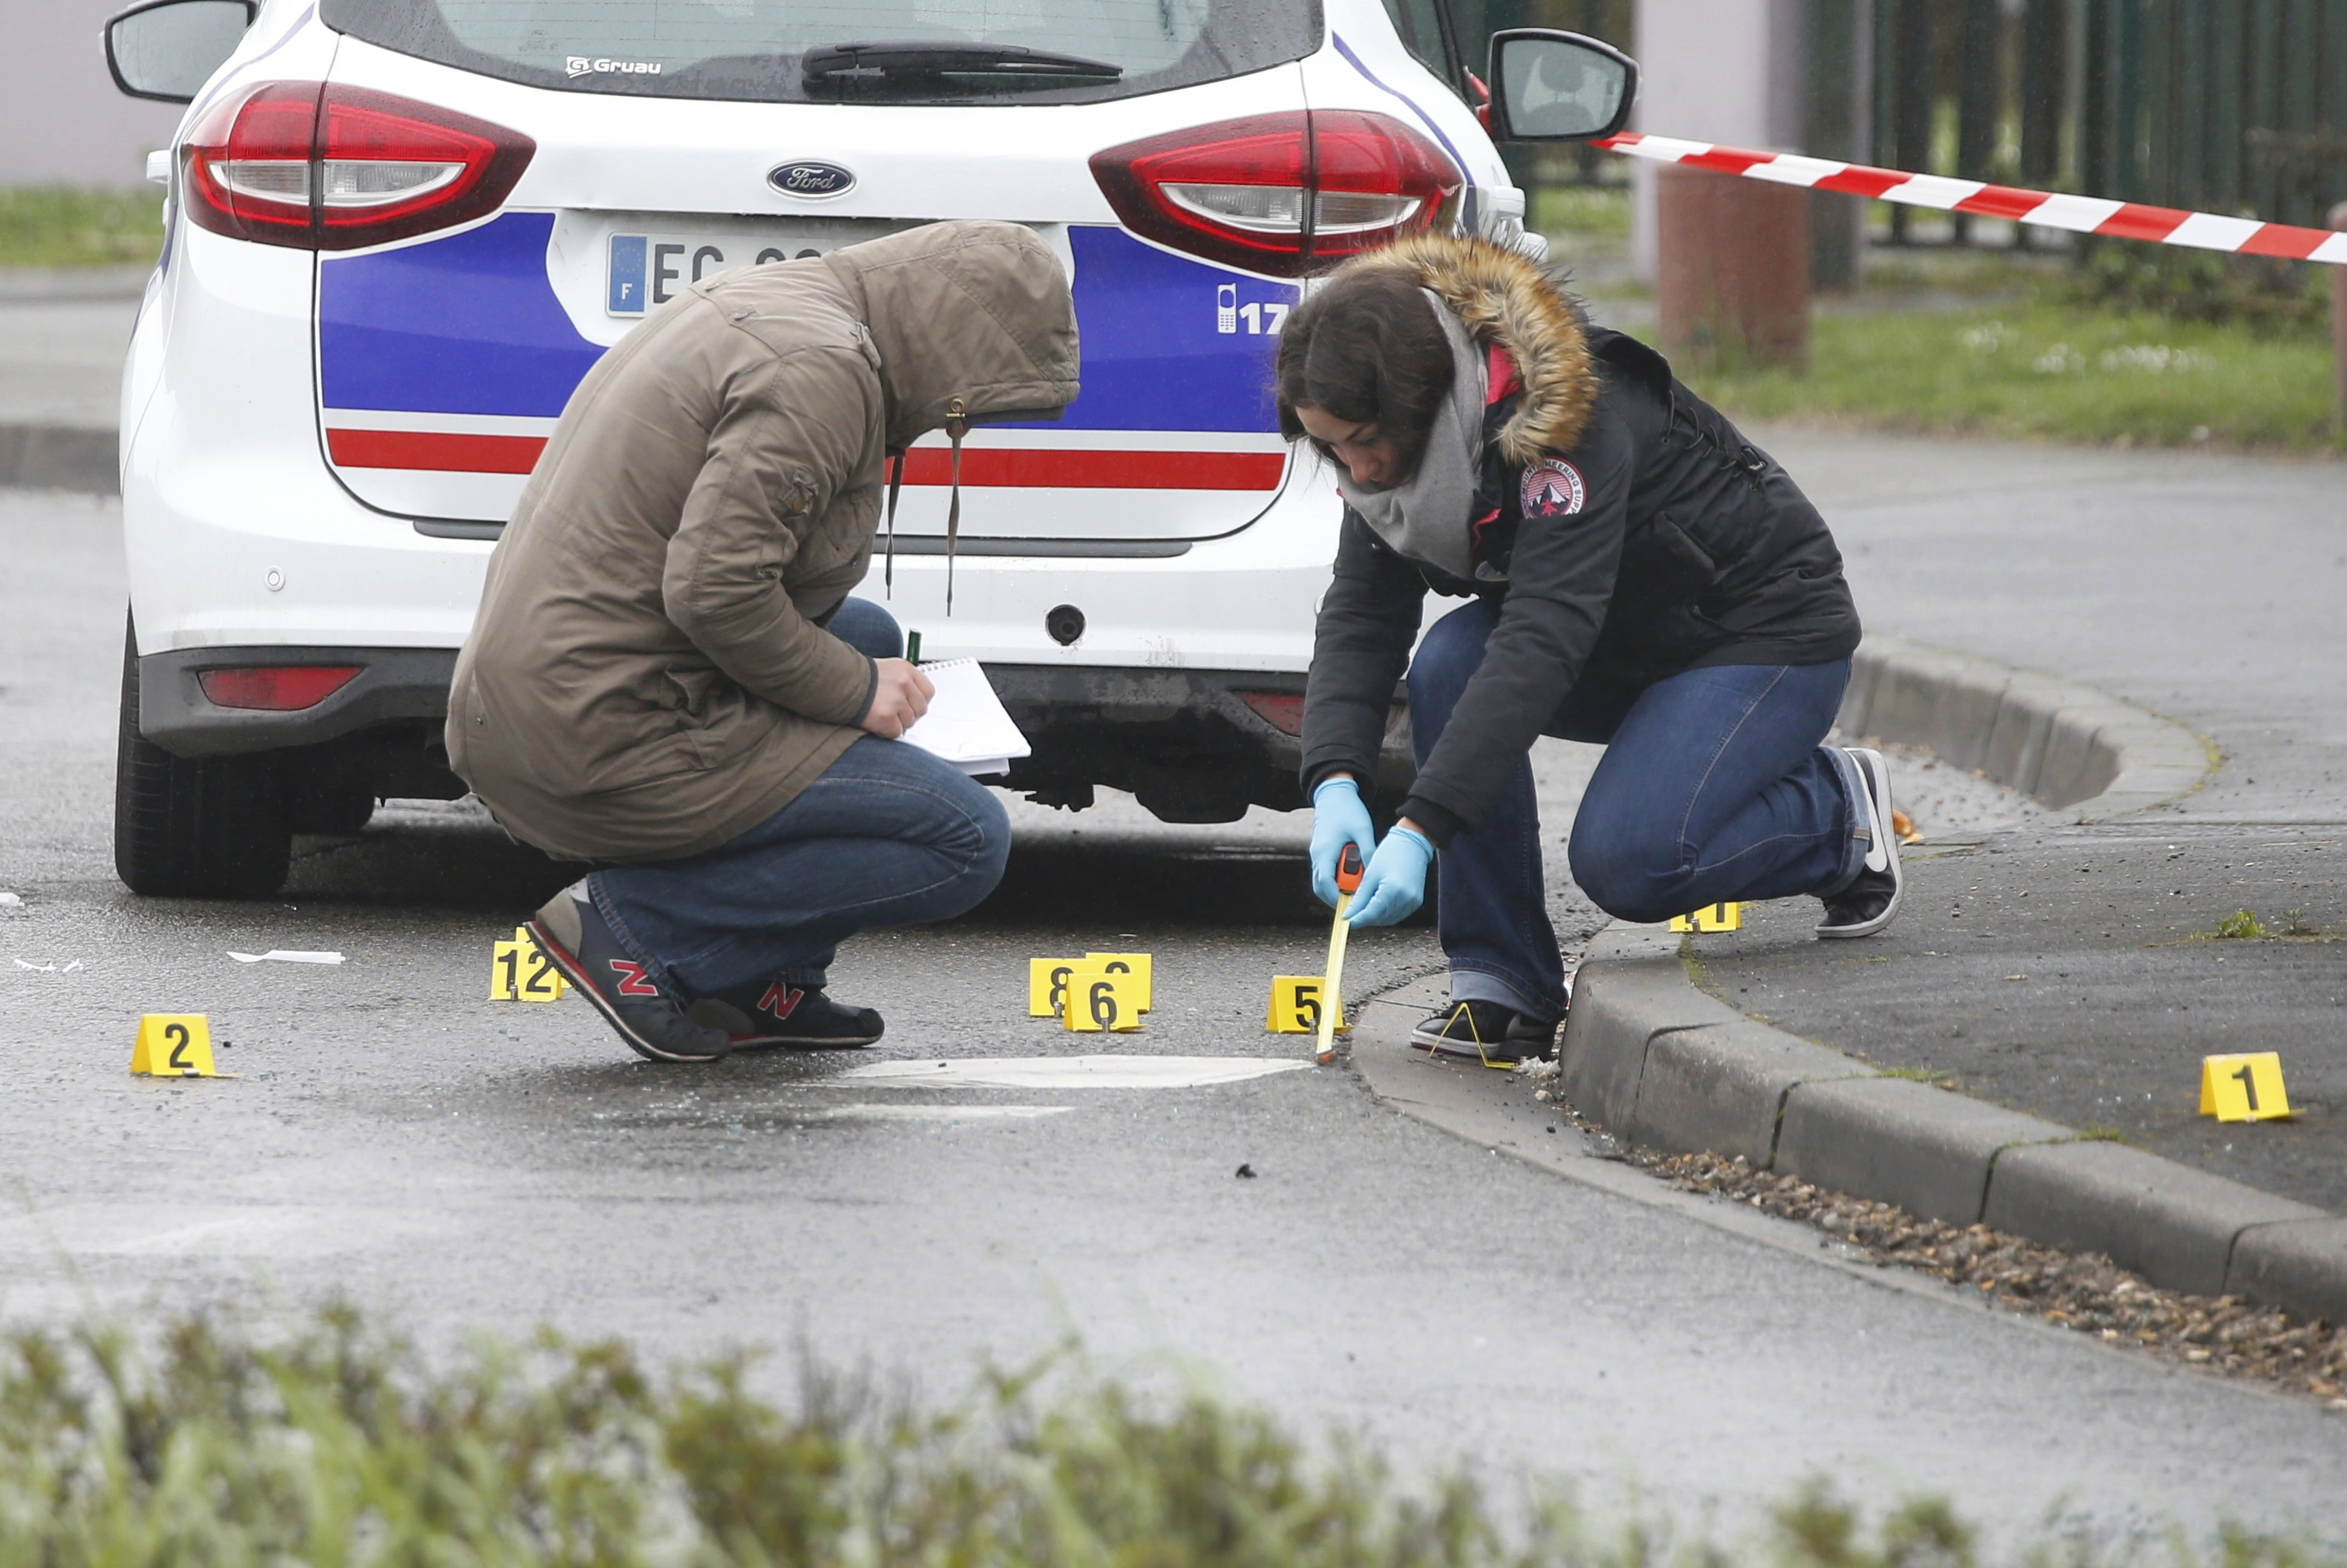 Man killed at Paris airport planned to 'die for Allah' – prosecutor